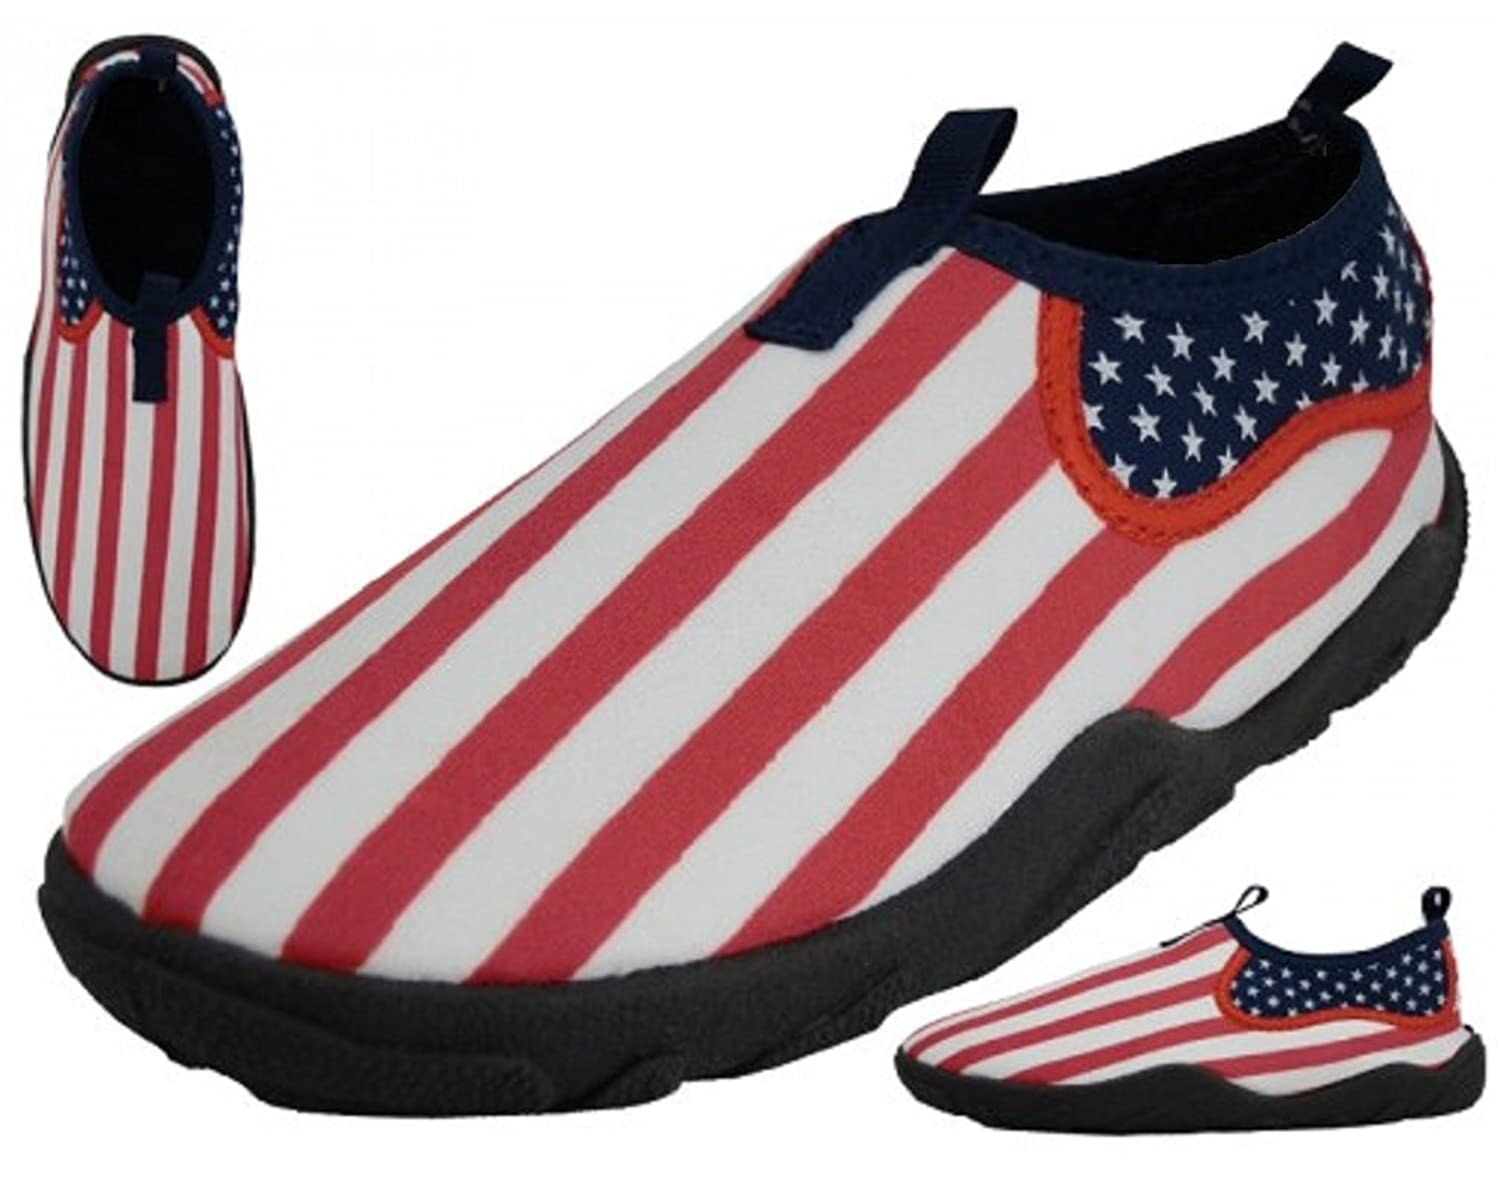 Amazon.com | American Flag Design Water Shoes - USA style Slip-on Aqua Socks  for Pool, Beach, Lake, Yoga, Exercise - MEN'S and WOMEN'S | Water Shoes